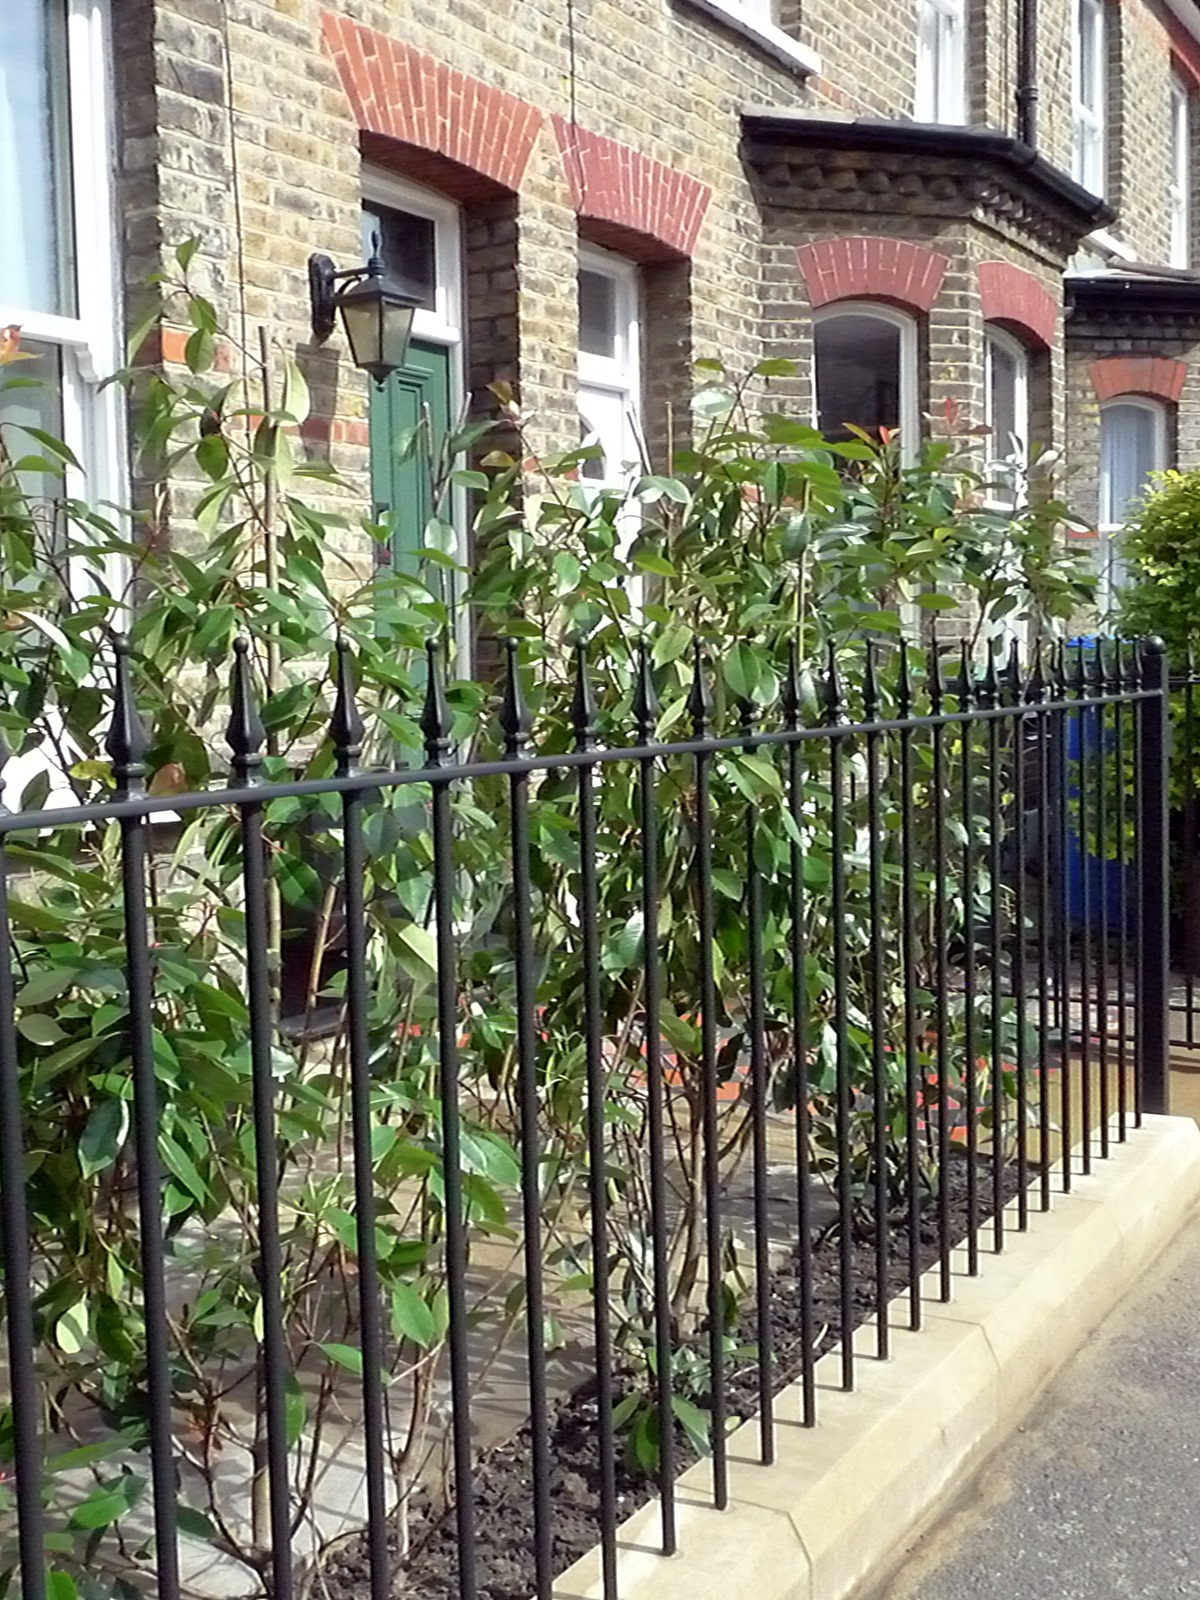 york stone wrought iron rails black and red terracota quarry mosaic victorian tiles camberwell london south east london (1)